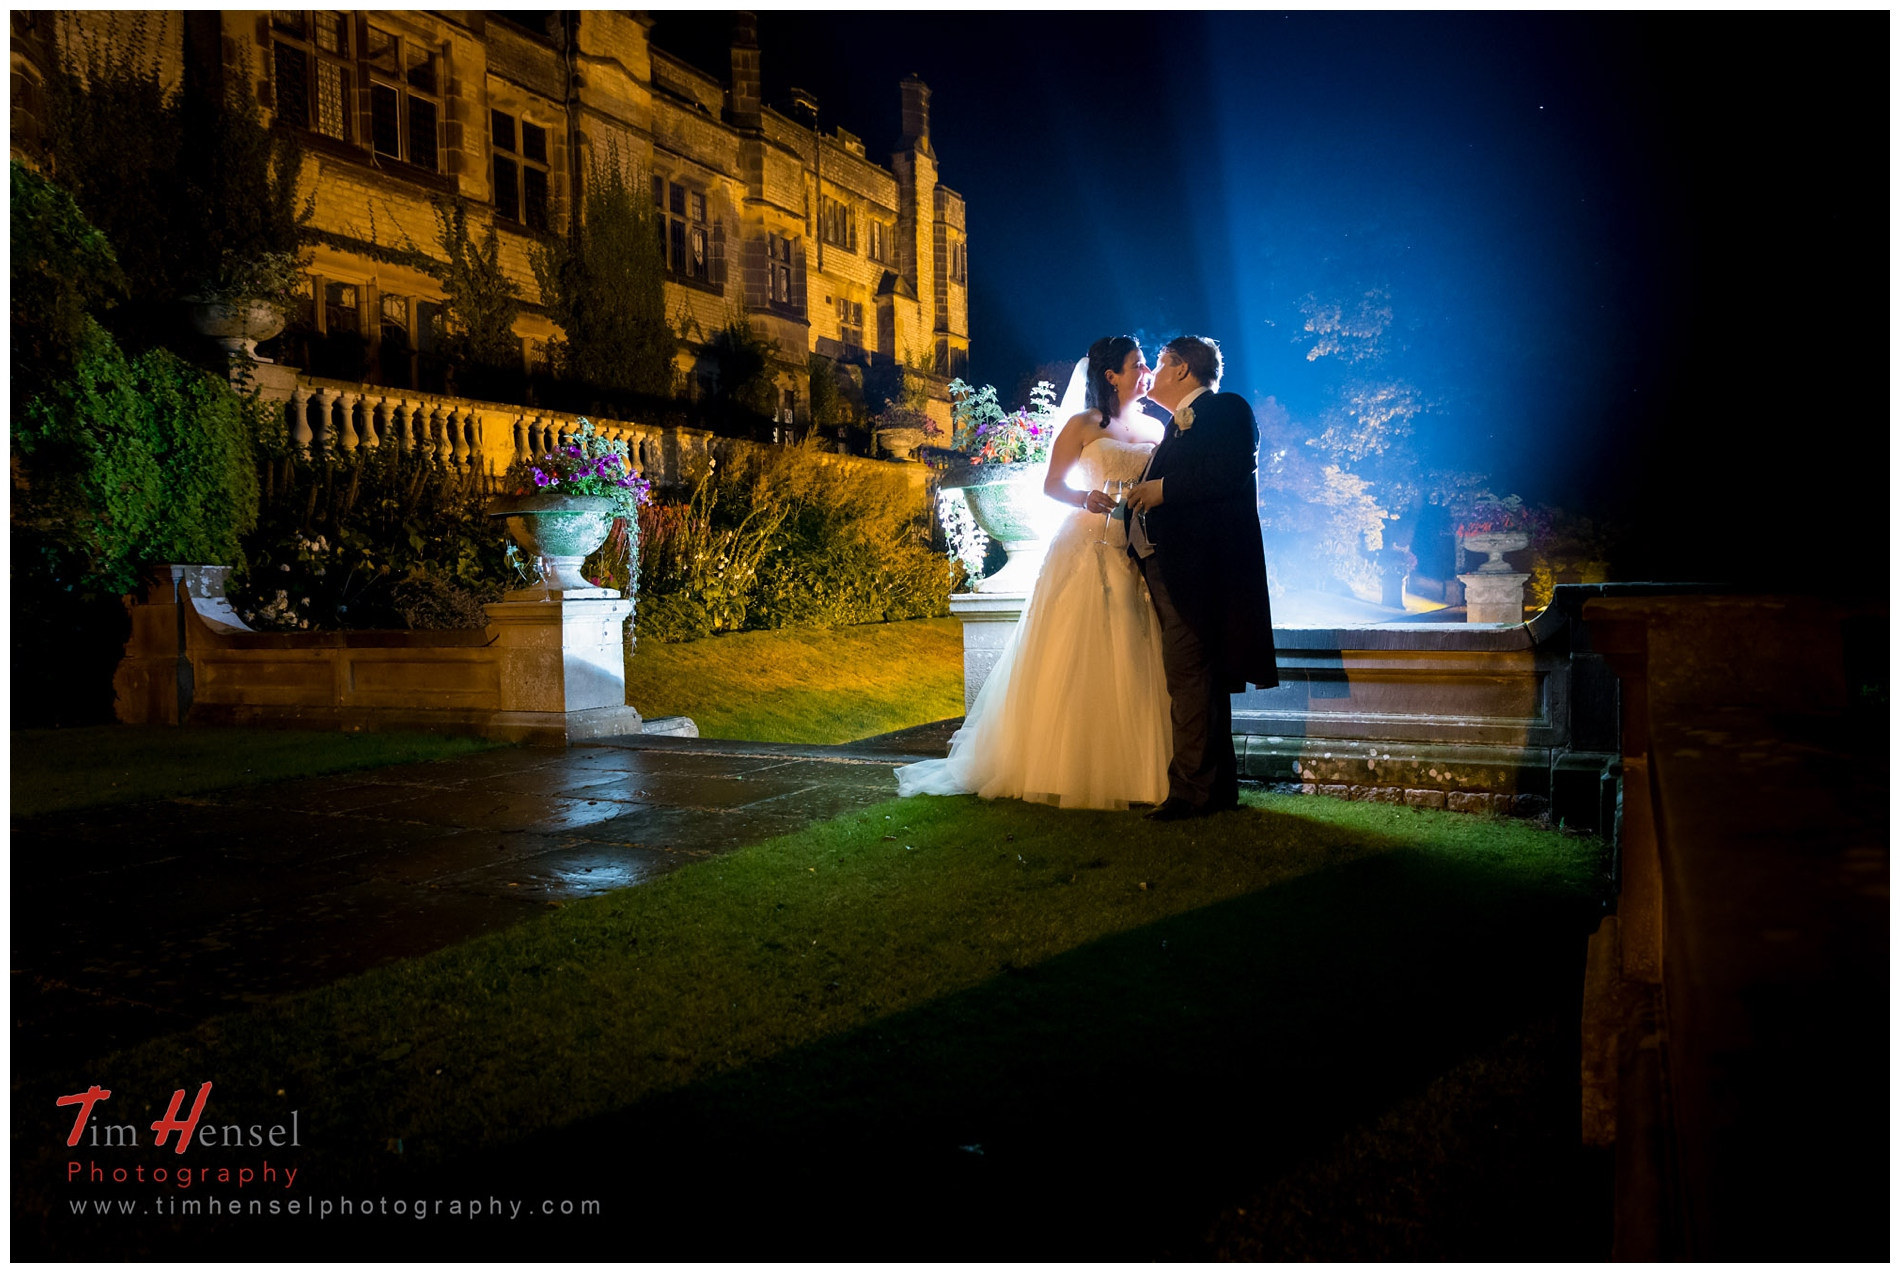 Relaxed, Creative wedding photography at Thornbridge Hall in Derbyshire